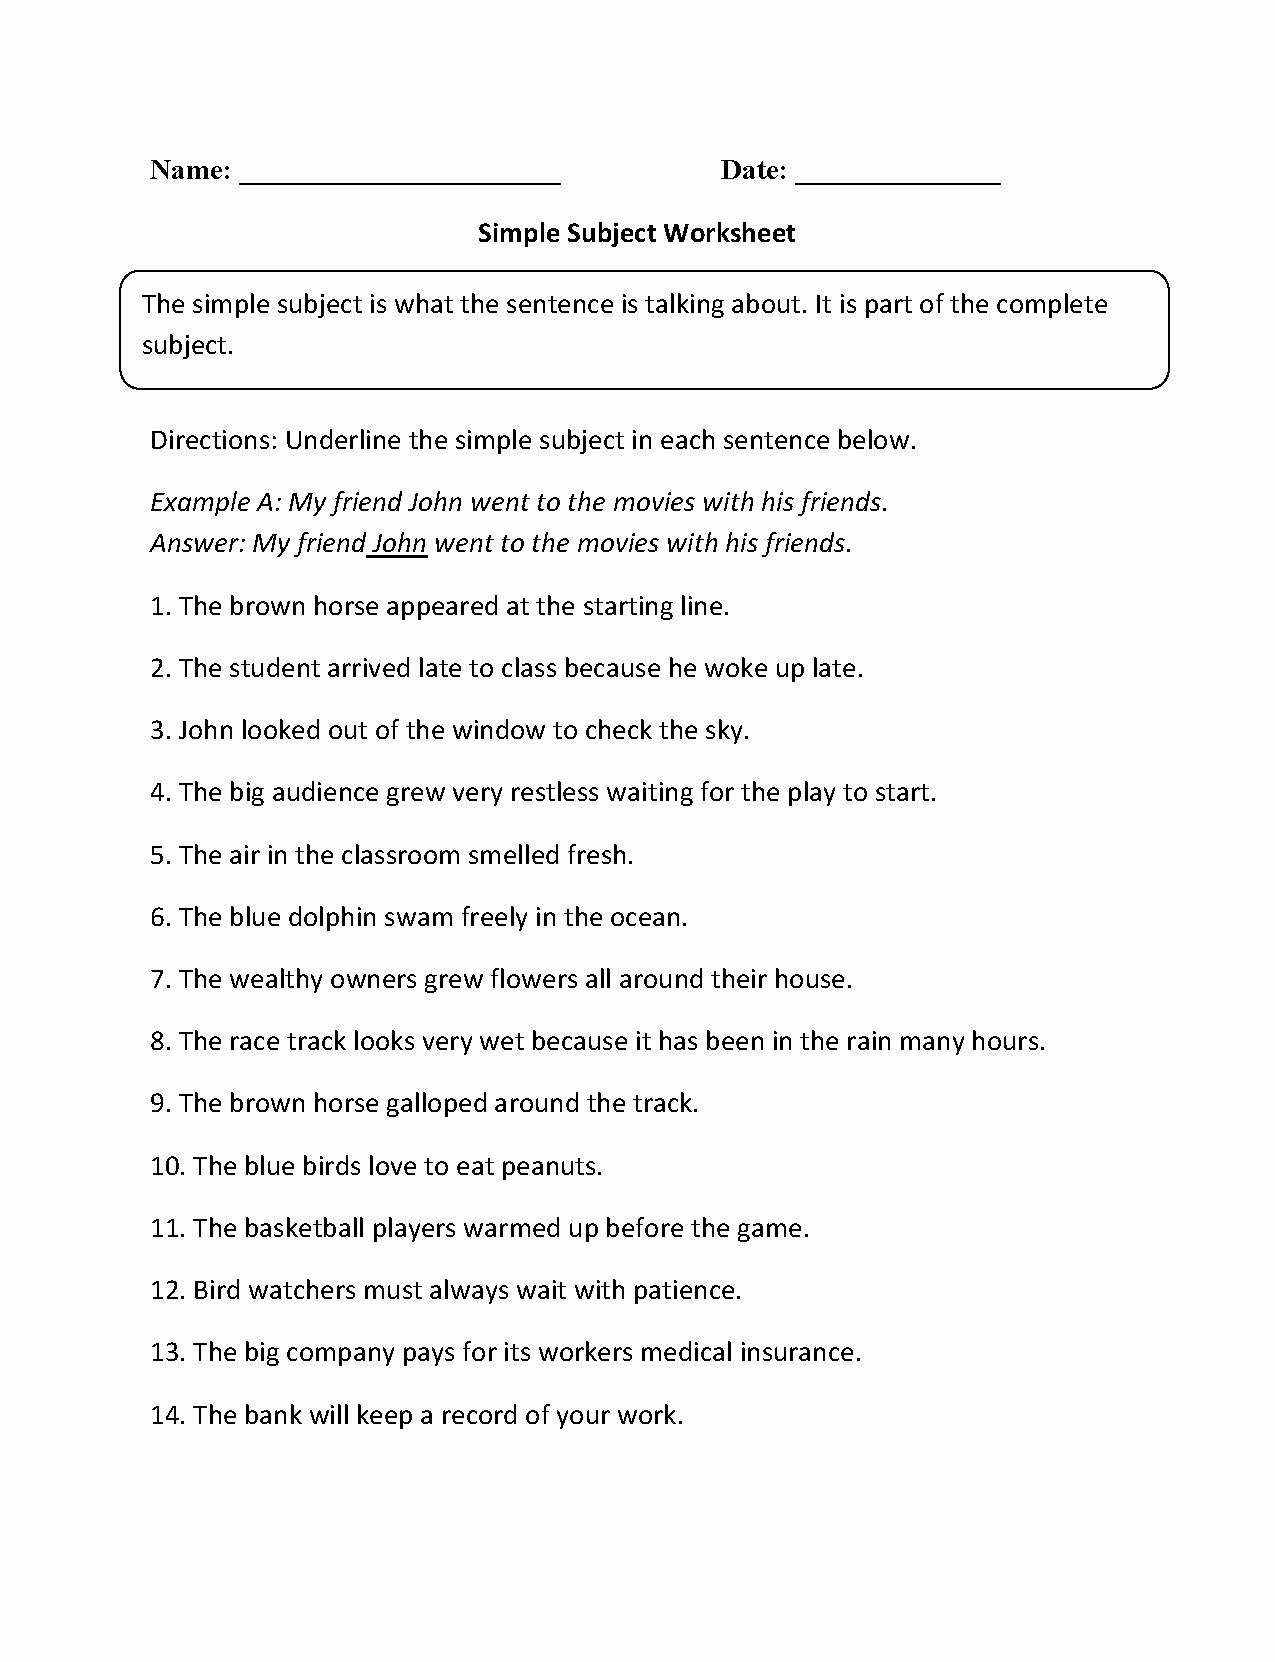 Subjects and Predicates Worksheet New Simple Subject Worksheet